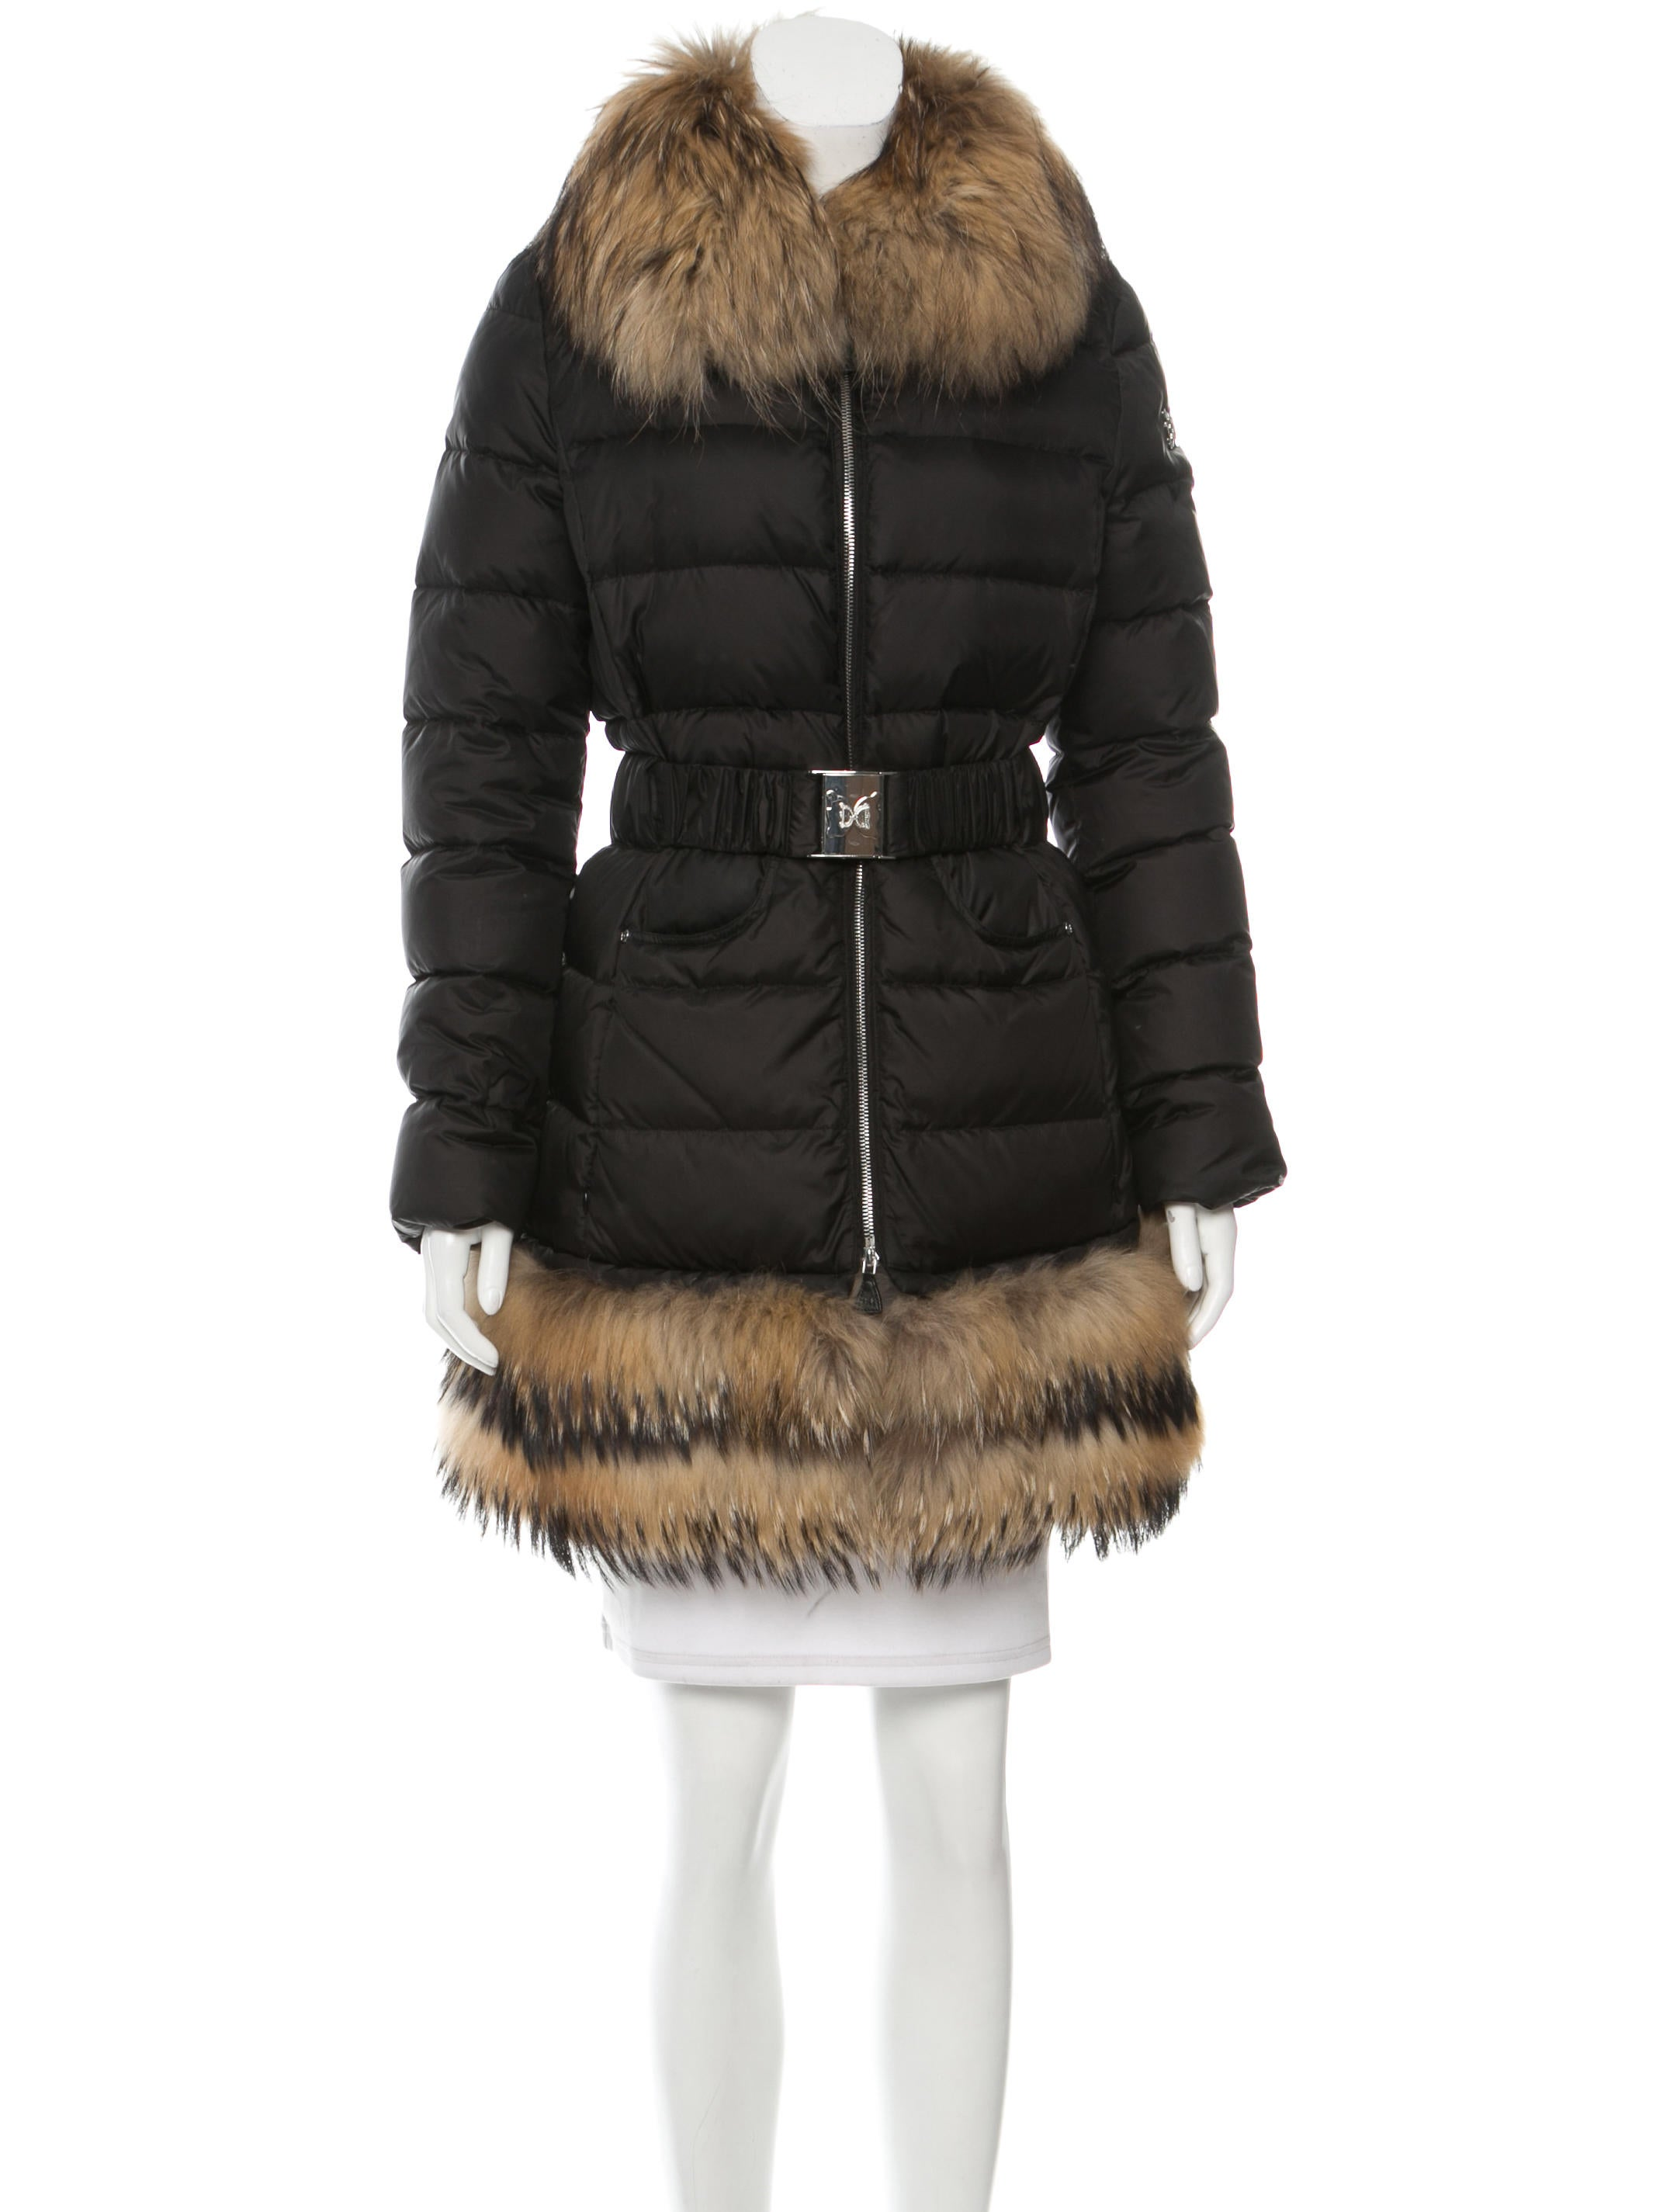 Free shipping BOTH ways on puffer jacket with fur hood, from our vast selection of styles. Fast delivery, and 24/7/ real-person service with a smile. Click or call